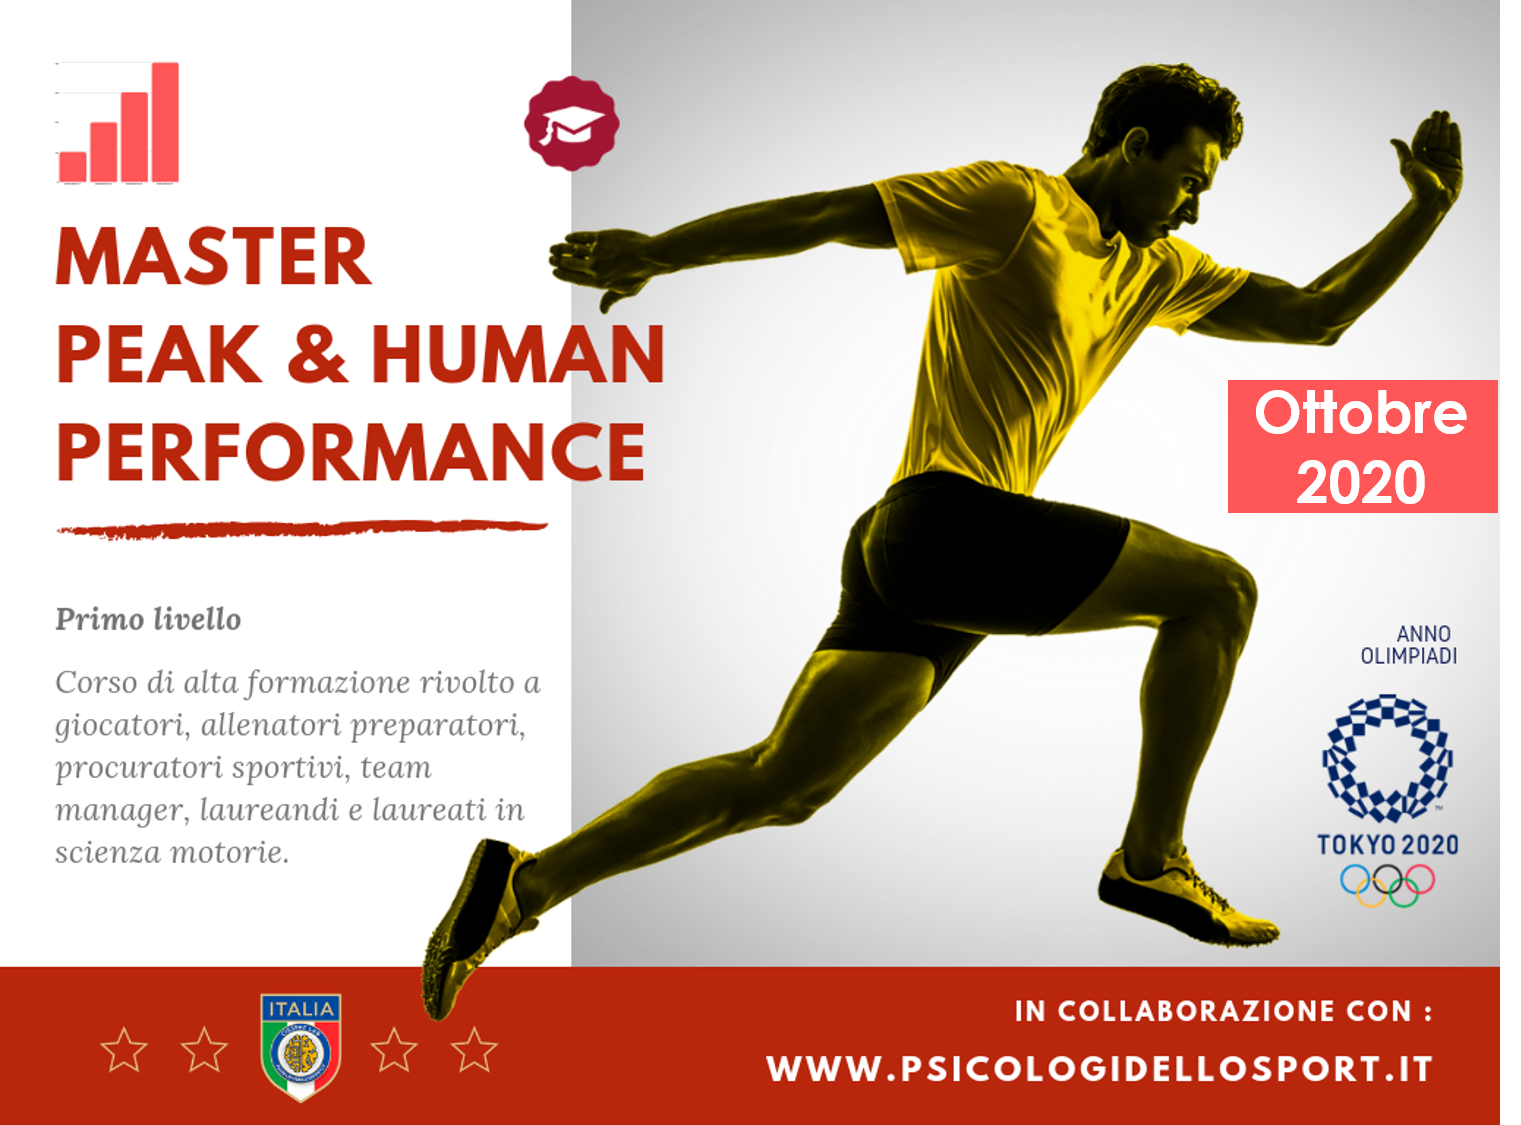 Master-peak-human-performance